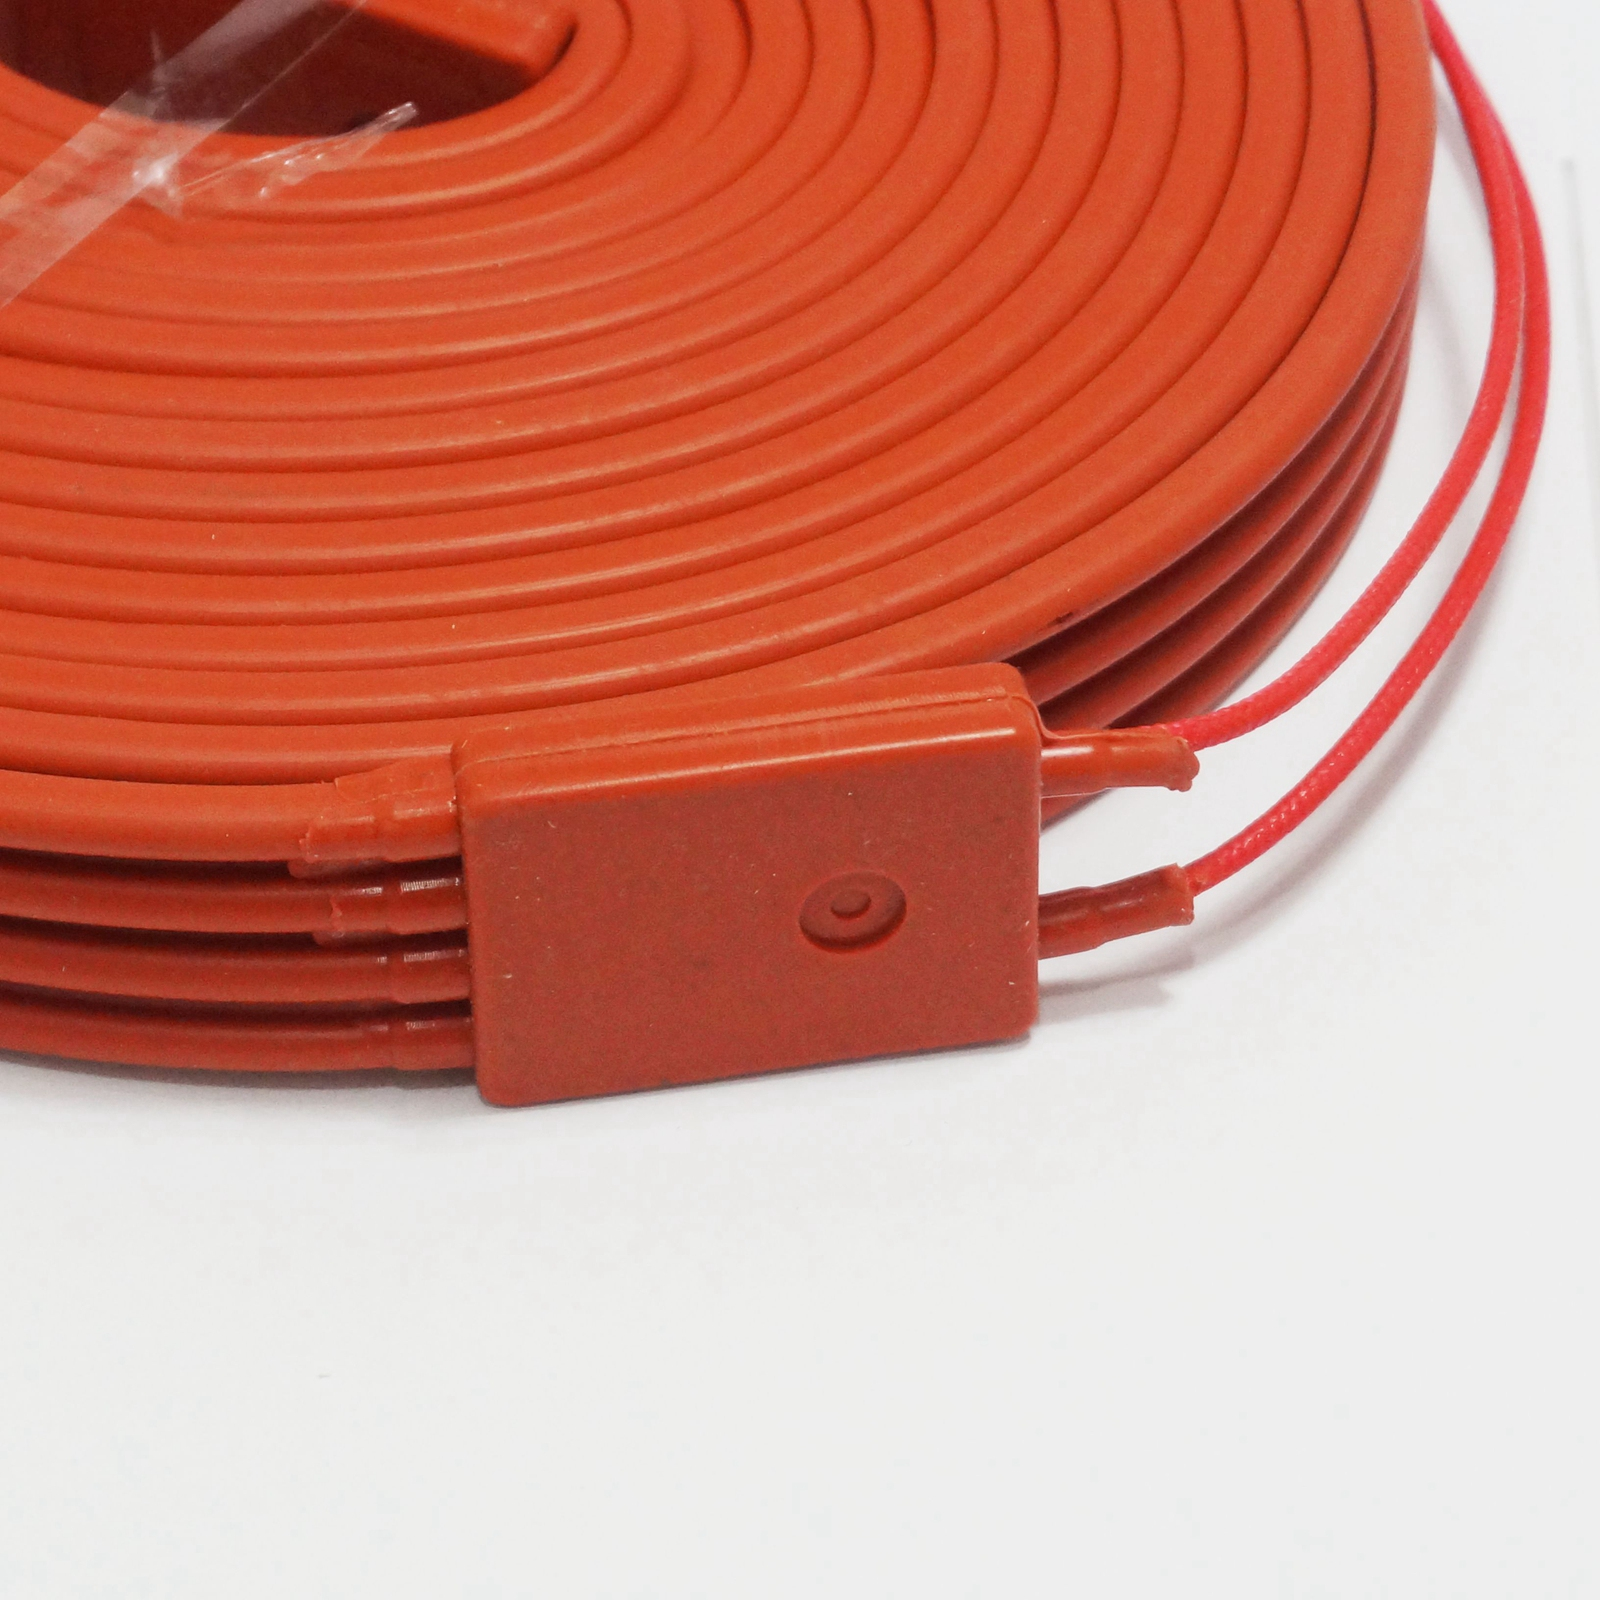 220v ac 25x5000mm 500w waterproof flexible silicone rubber heater heating belt unfreezer for pipeline electrical wires in wires cables from lights  [ 1600 x 1600 Pixel ]